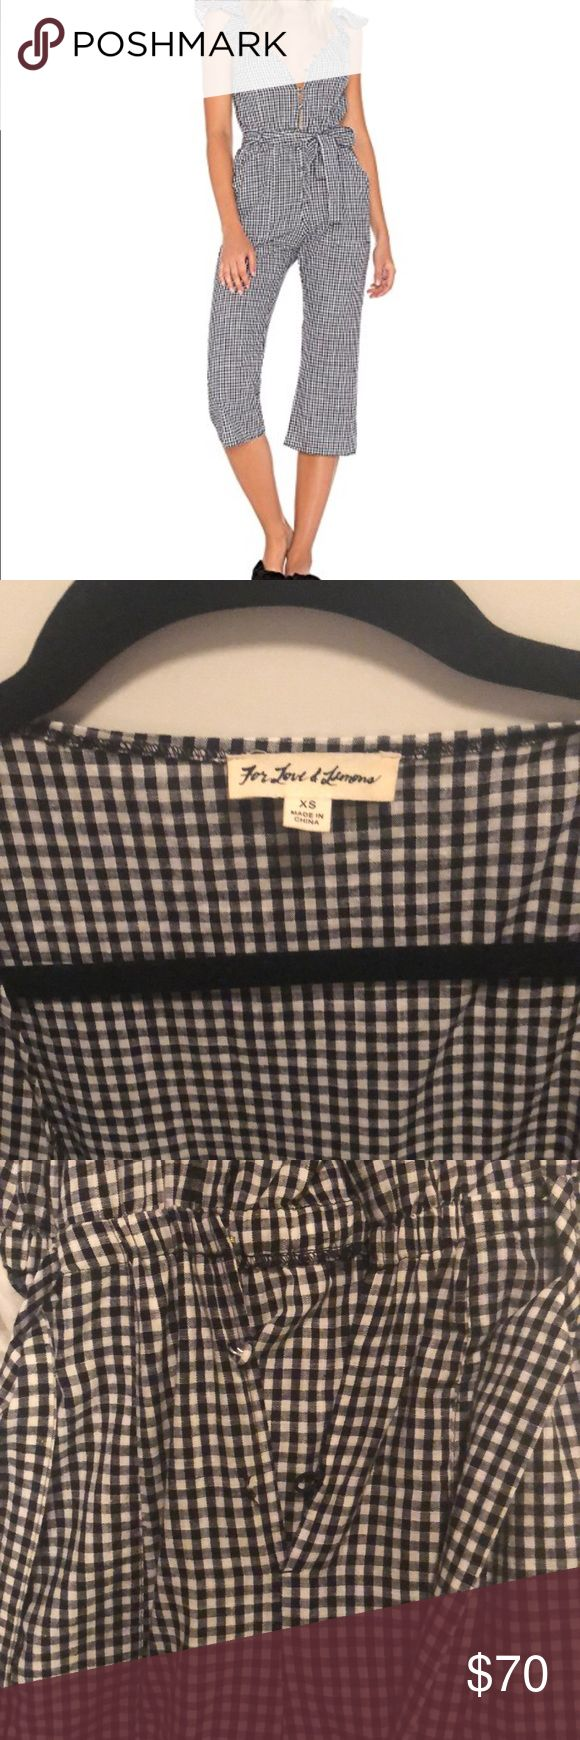 For Love and Lemons Sunny Gingham Romper Black and white checkered jumpsuit as pictured. Size XS worn very minimally but given the thinner fabric 1 bottom button missing-shown in pics. Easily replaced with plain black or white button since it's the bottom one that can't really be seen. Great condition, lightweight and flattering For Love And Lemons Other